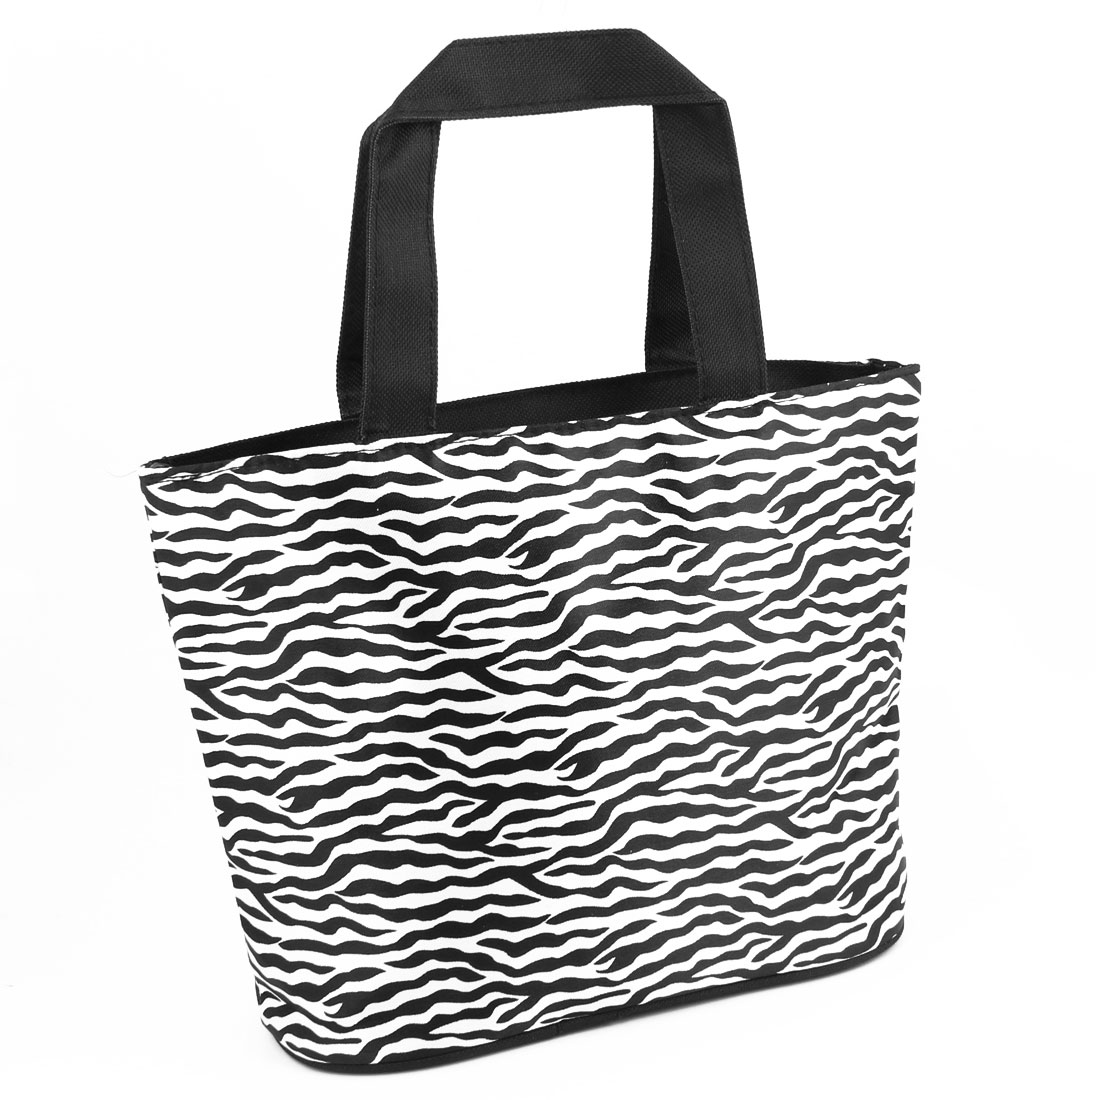 Zipper Closure Folding Zebra Stripes Shopping Hand Bag Handbag Tote Black White